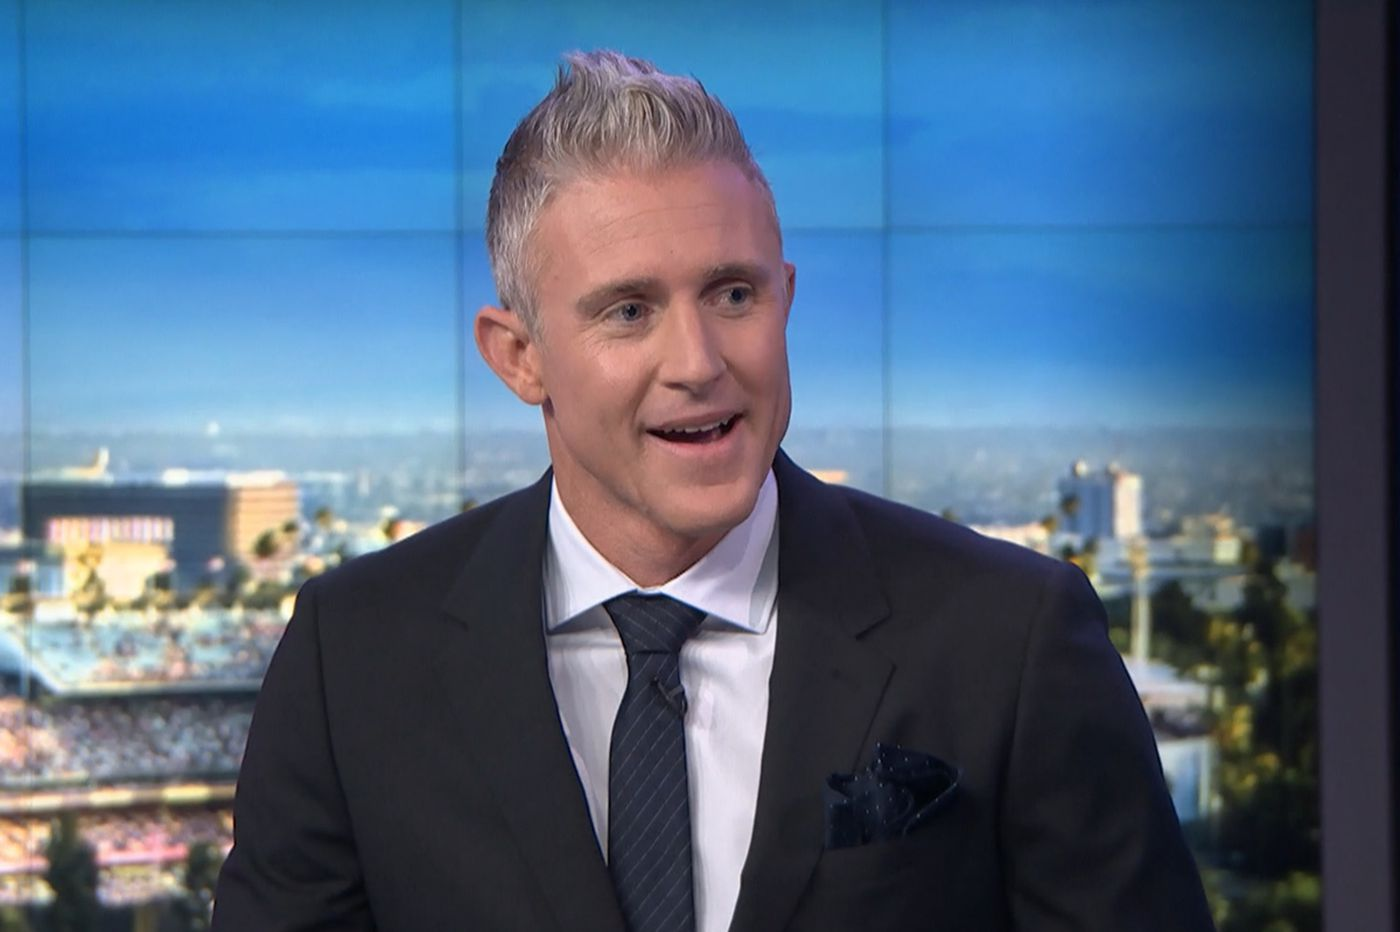 Chase Utley makes his TV debut by trashing the Mets, discussing the Philly media